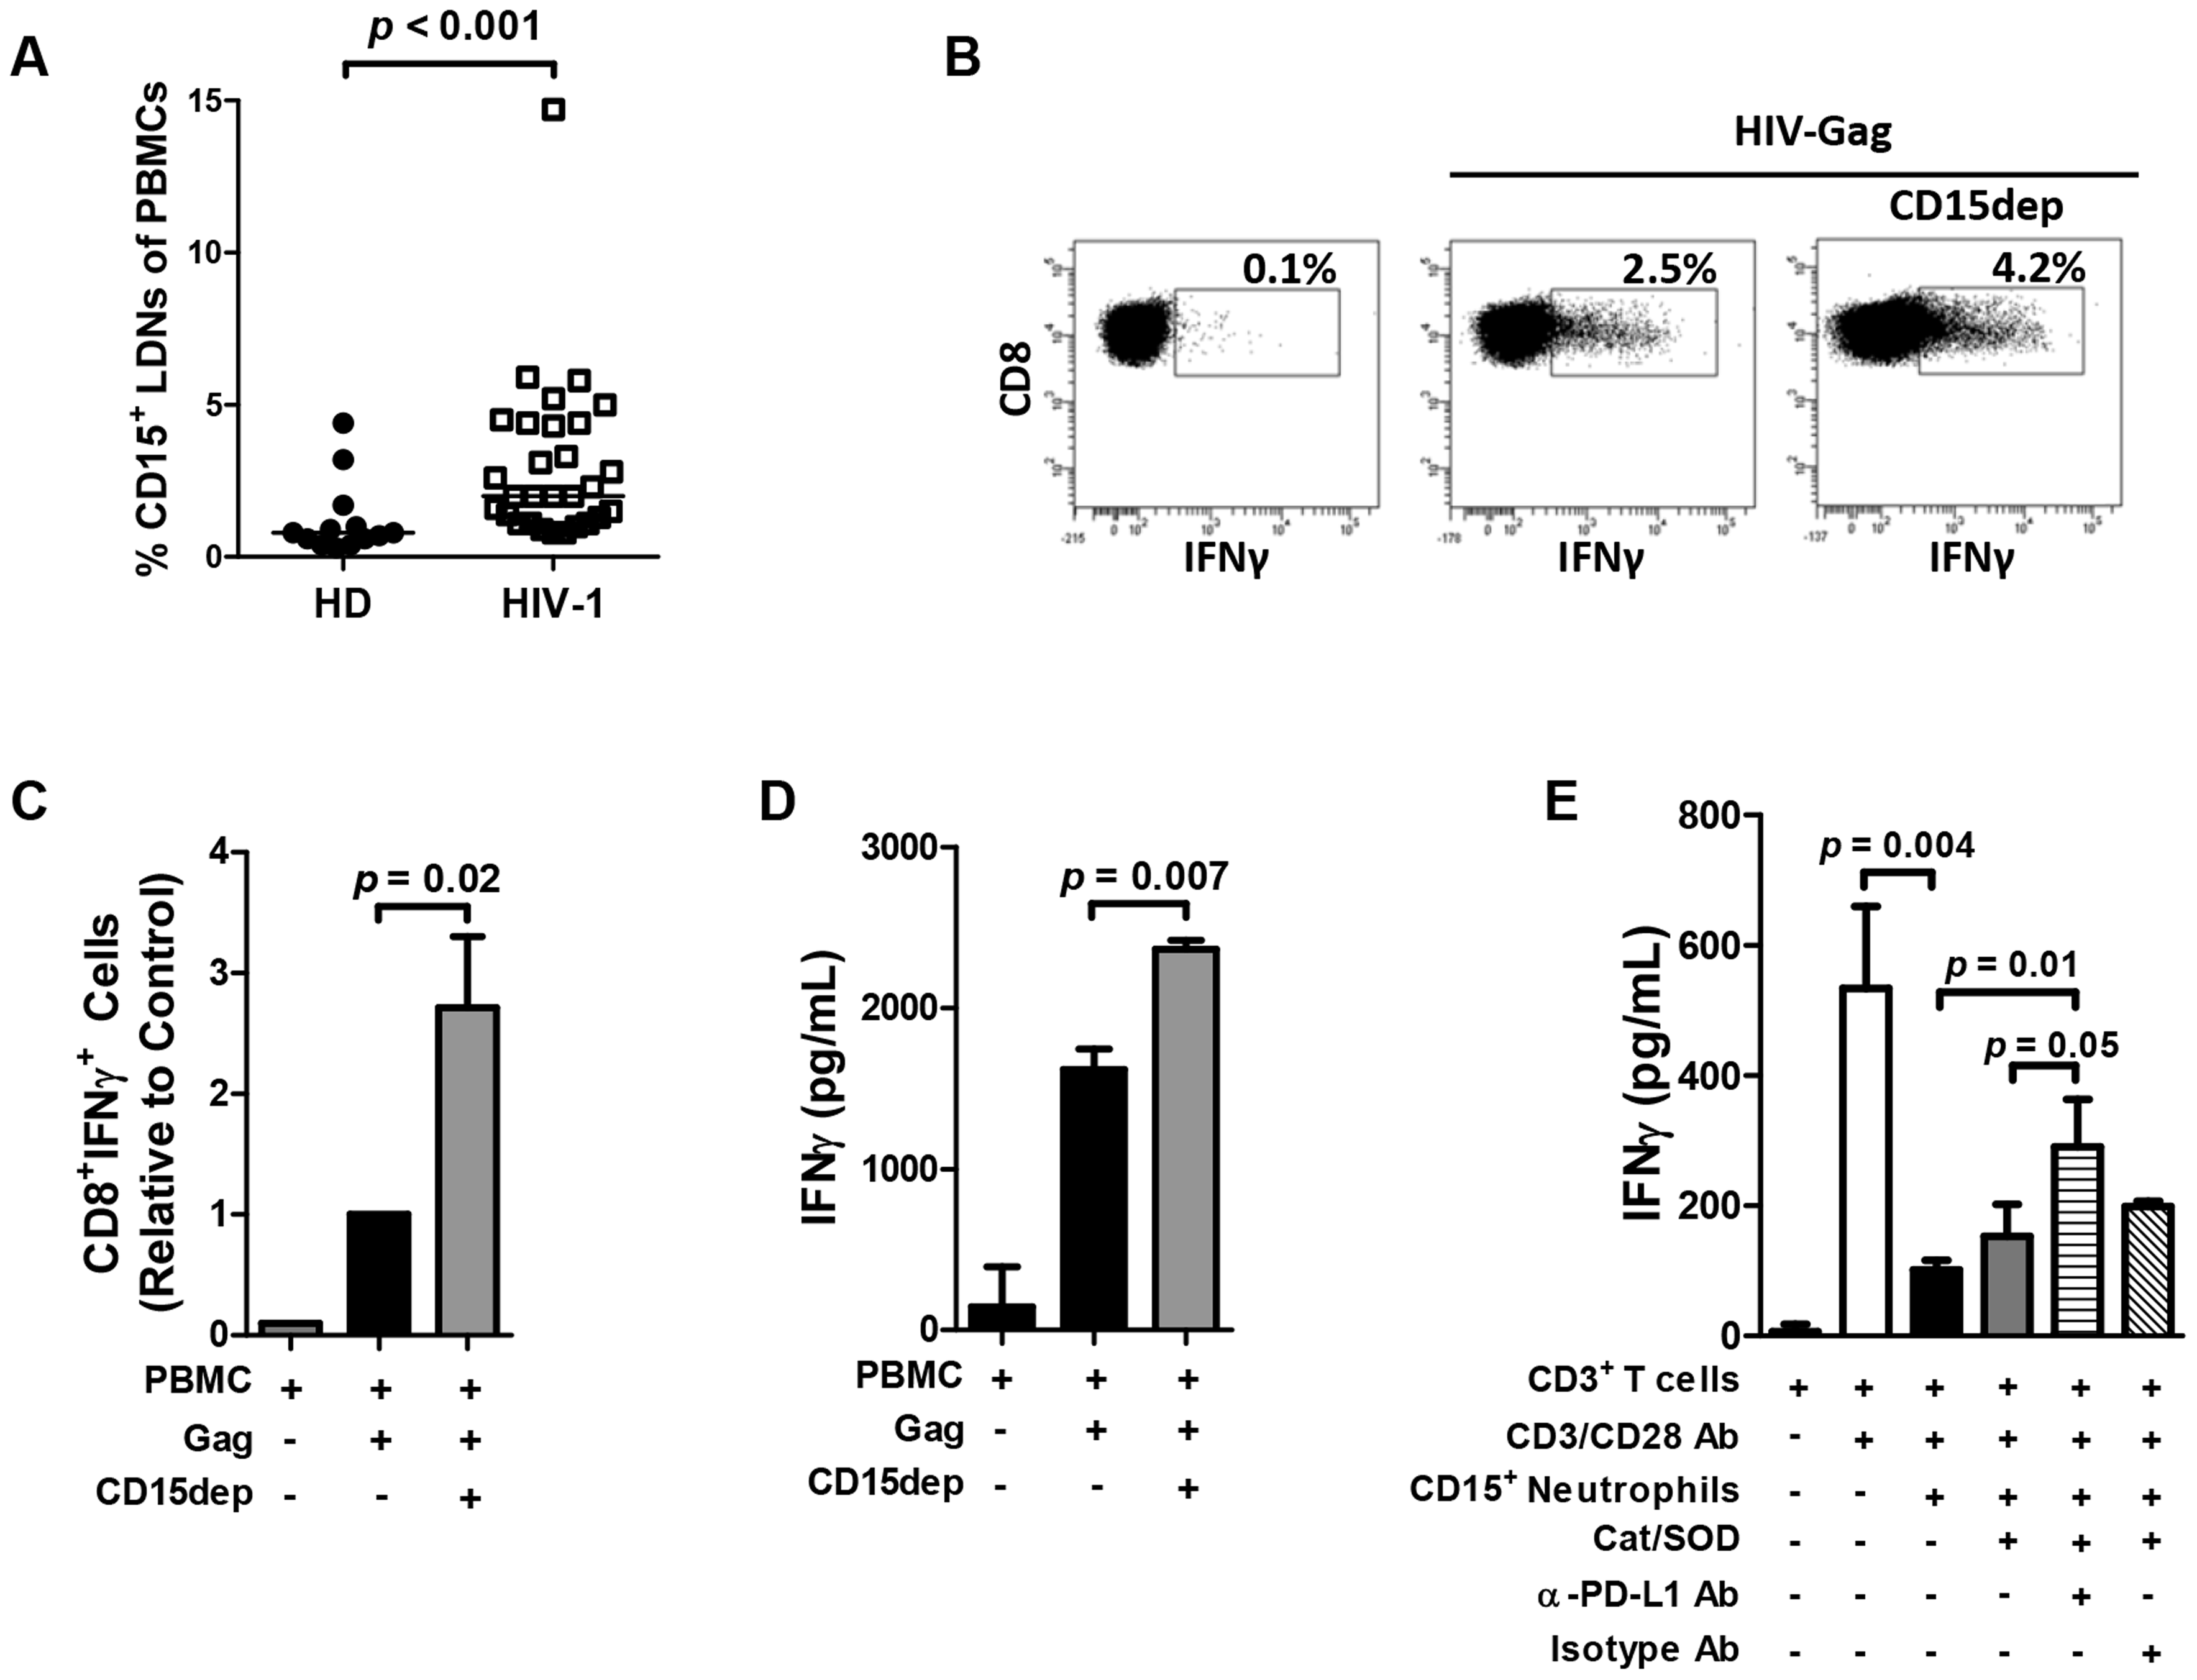 Neutrophil suppression of T cell function is mediated in part via the PD-L1/PD-1 pathway.